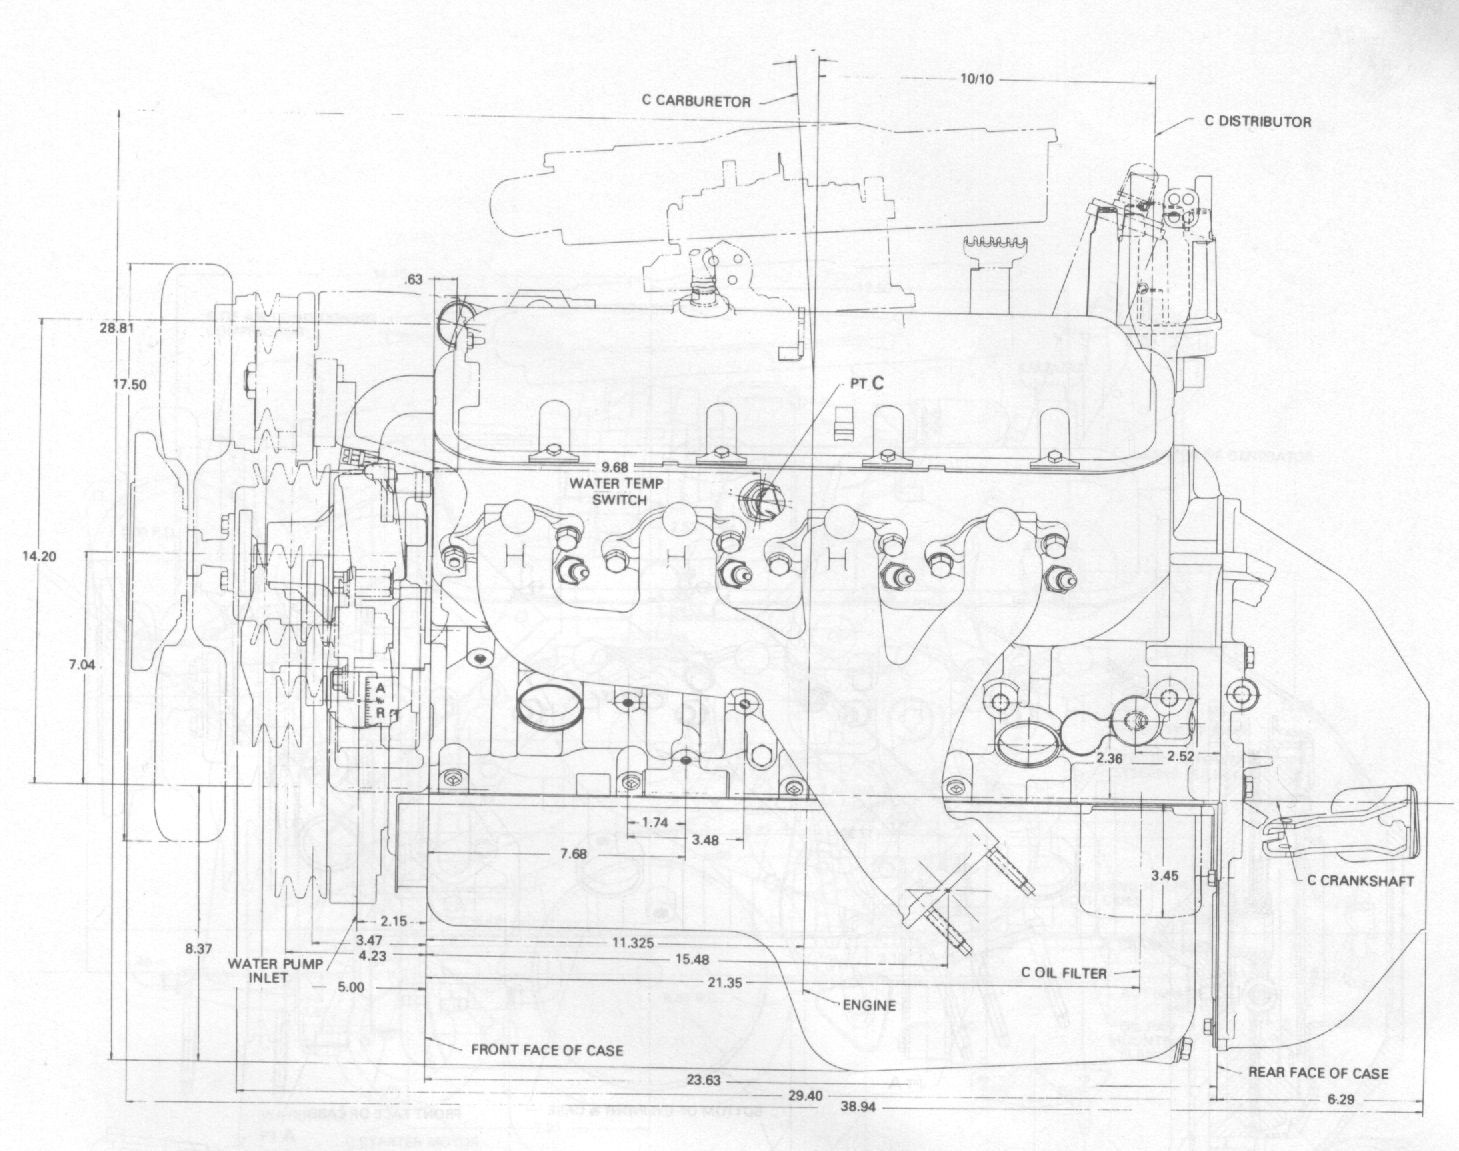 Hemi Engine Block Dimensions furthermore Request Bbc Dimensions For Project moreover 1309 Chevrolet Camaro Know Your Stripes furthermore 357473289146750661 further File Schneckengetriebe. on sbc dimensions blueprints